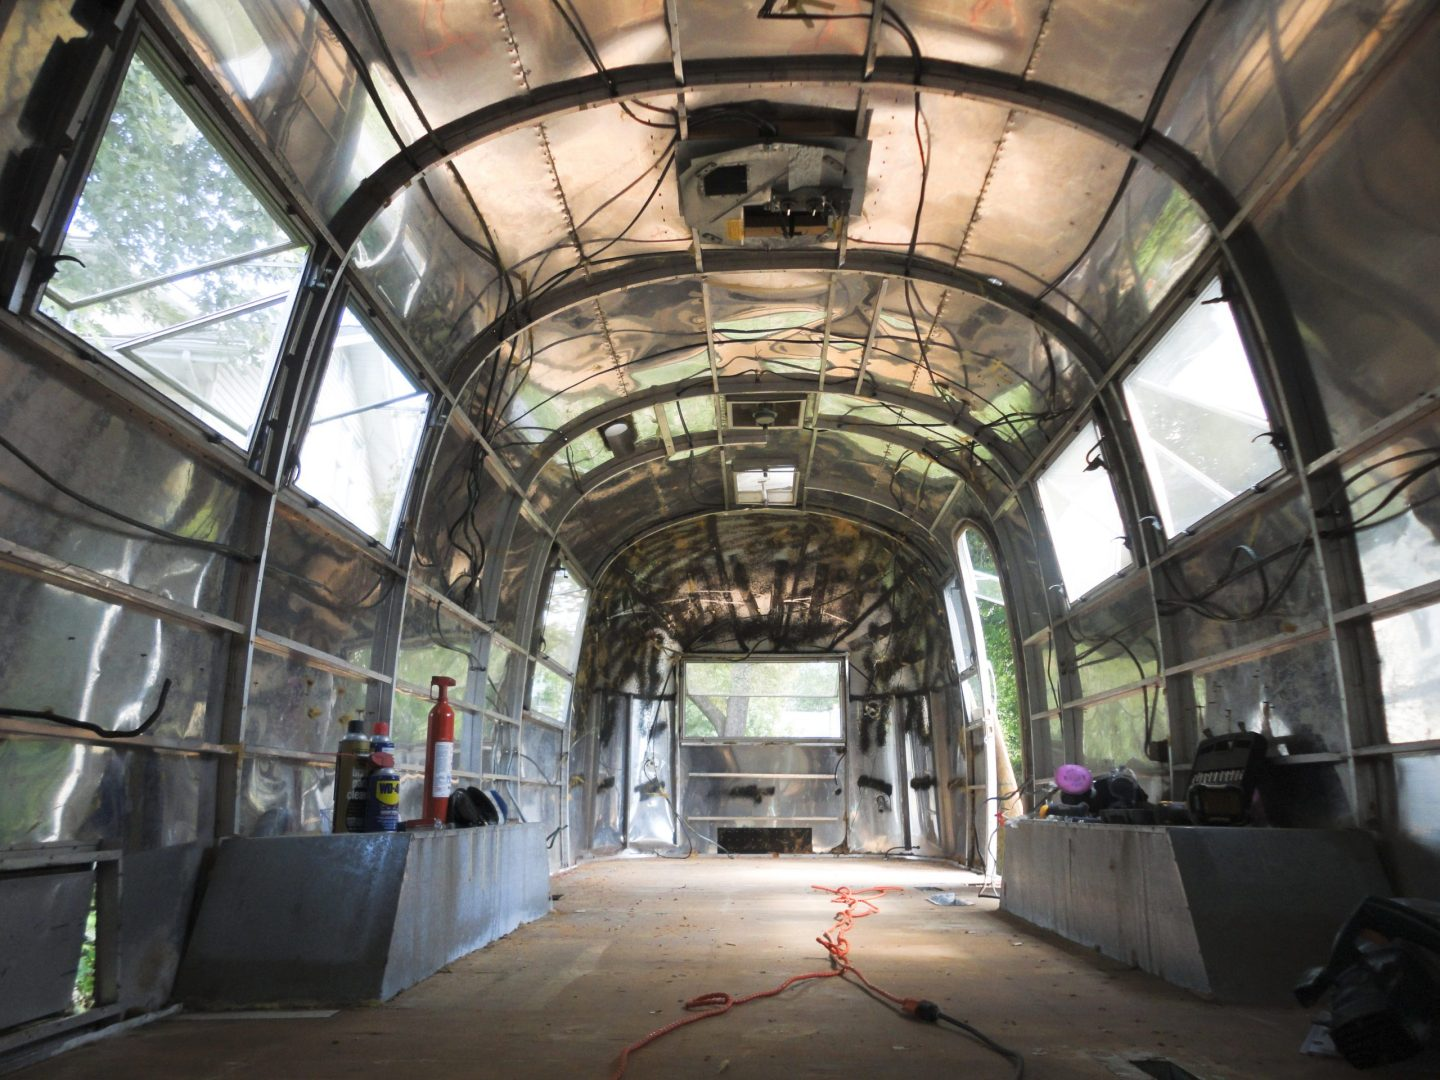 GUTTING (And Repurposing) a Vintage Airstream Interior